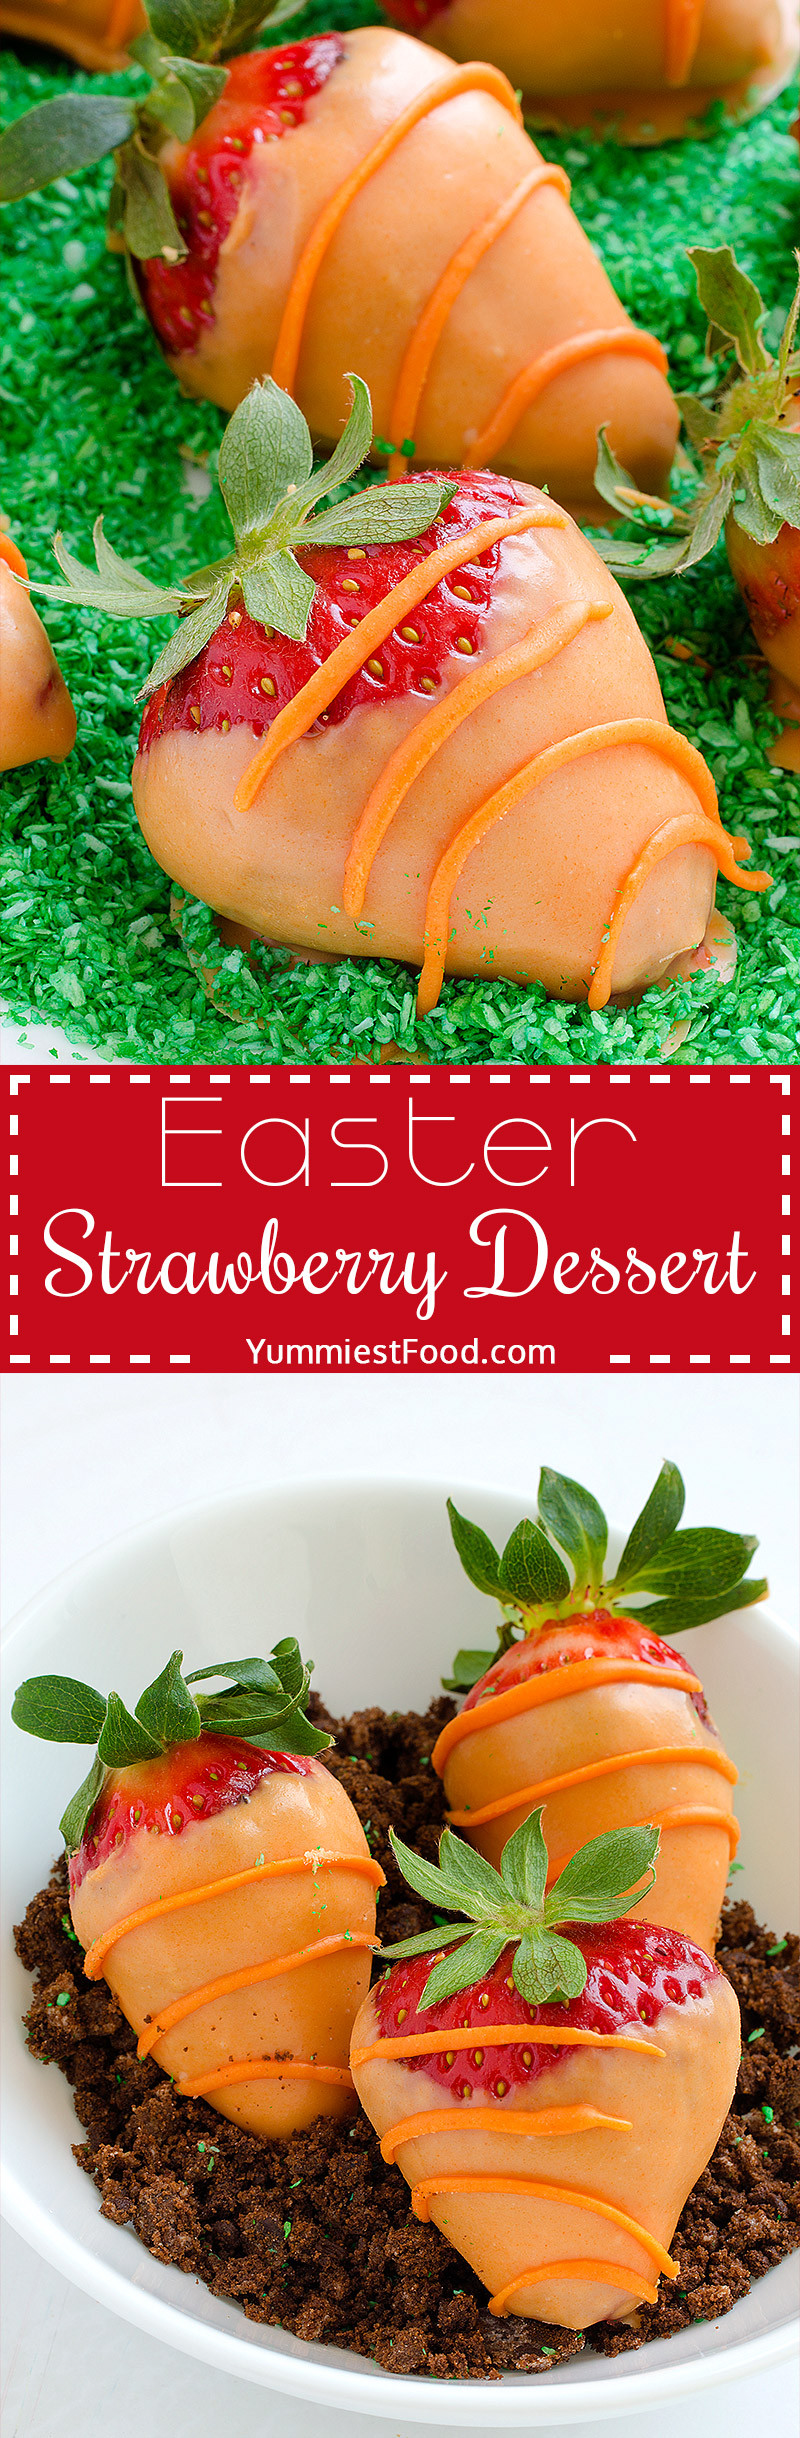 Strawberry Easter Desserts  Easter Strawberry Dessert Recipe from Yummiest Food Cookbook